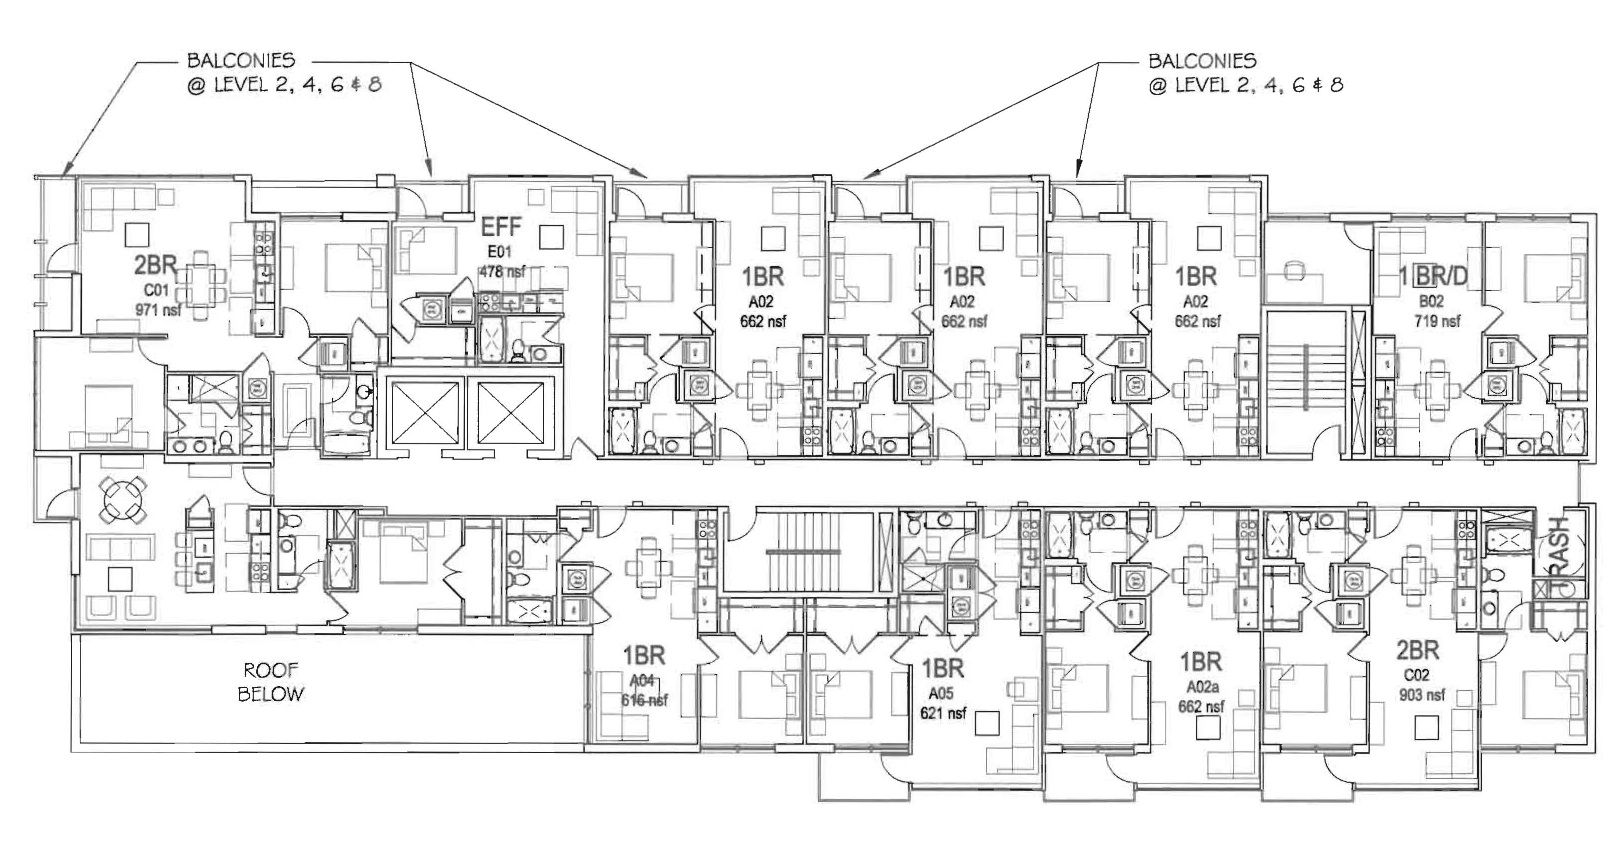 Apartment floor plans for mirym 39 s apartment building 7 for Apartment building plans 8 units